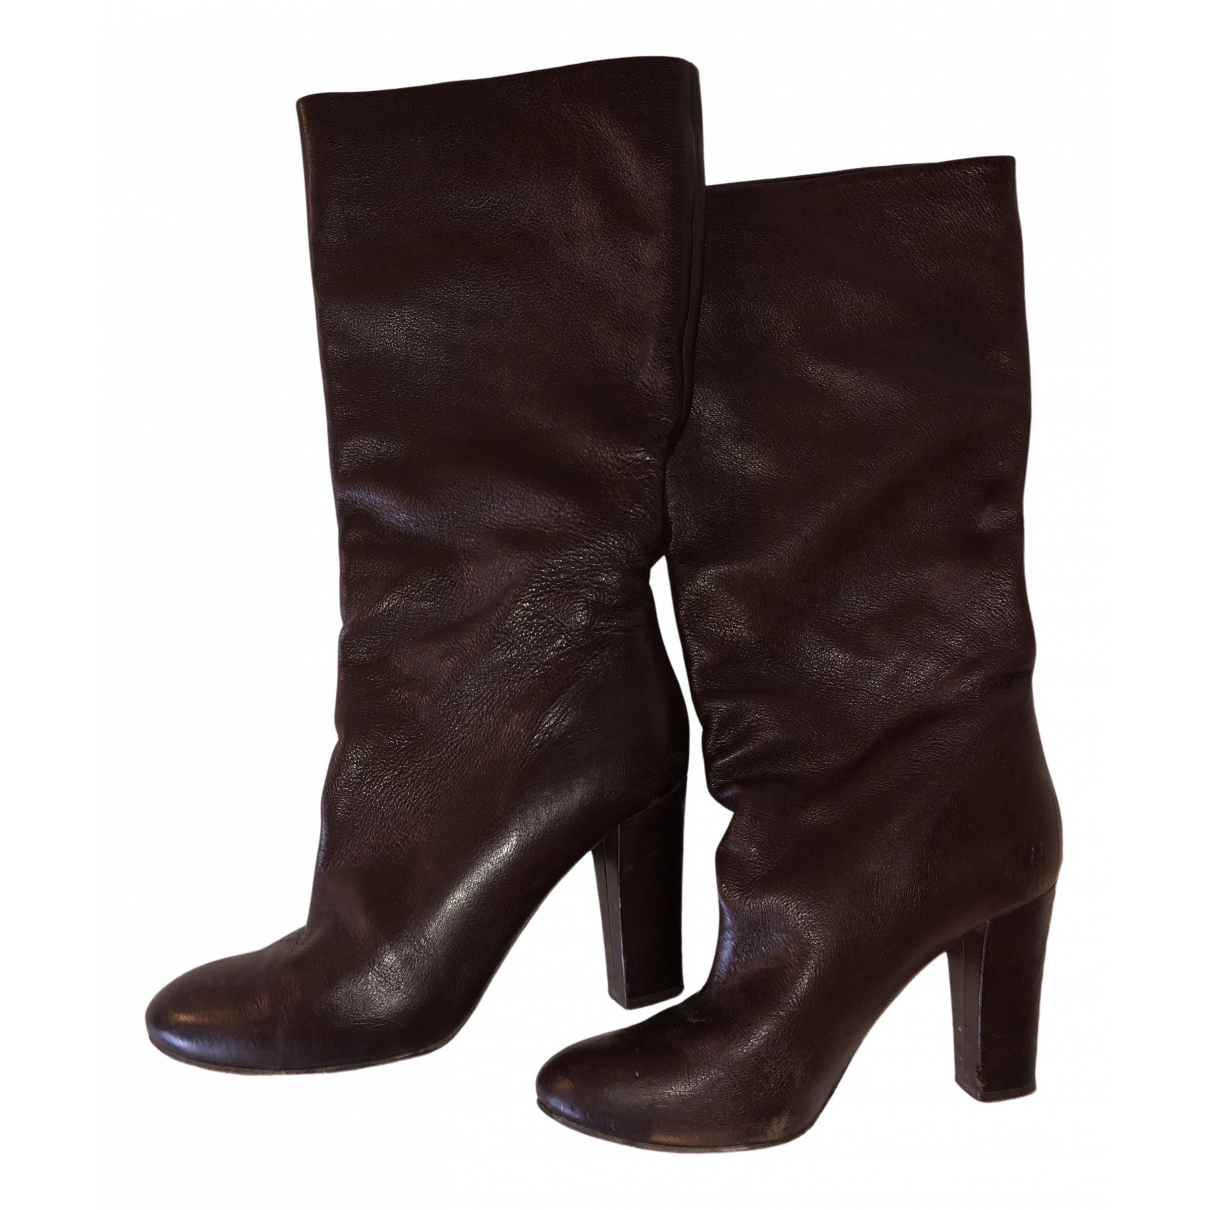 Chloé \N Brown Leather Boots for Women 37 EU